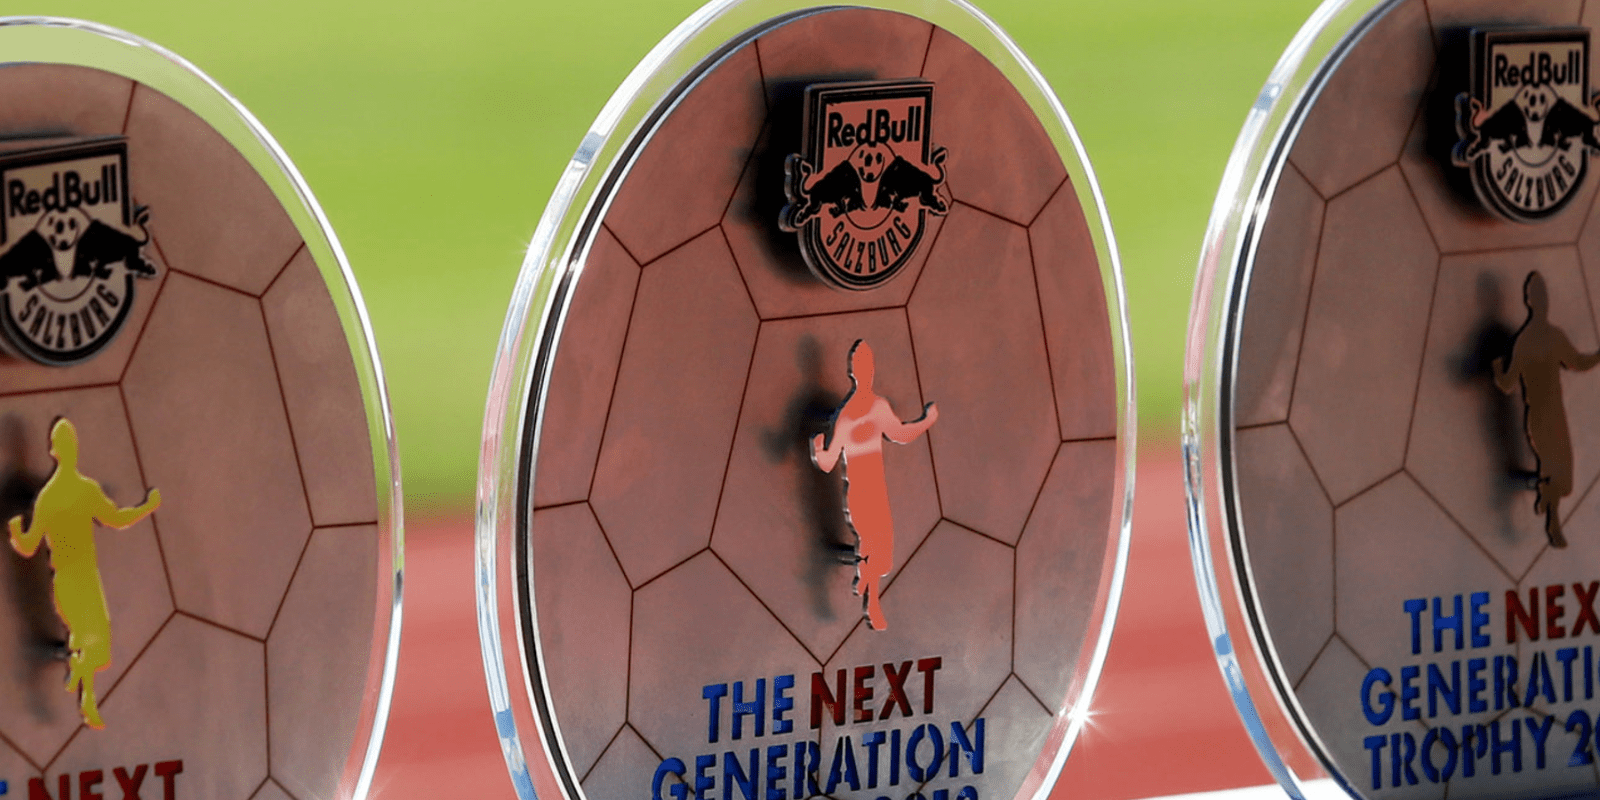 THE NEXT GENERATION TROPHY 2015